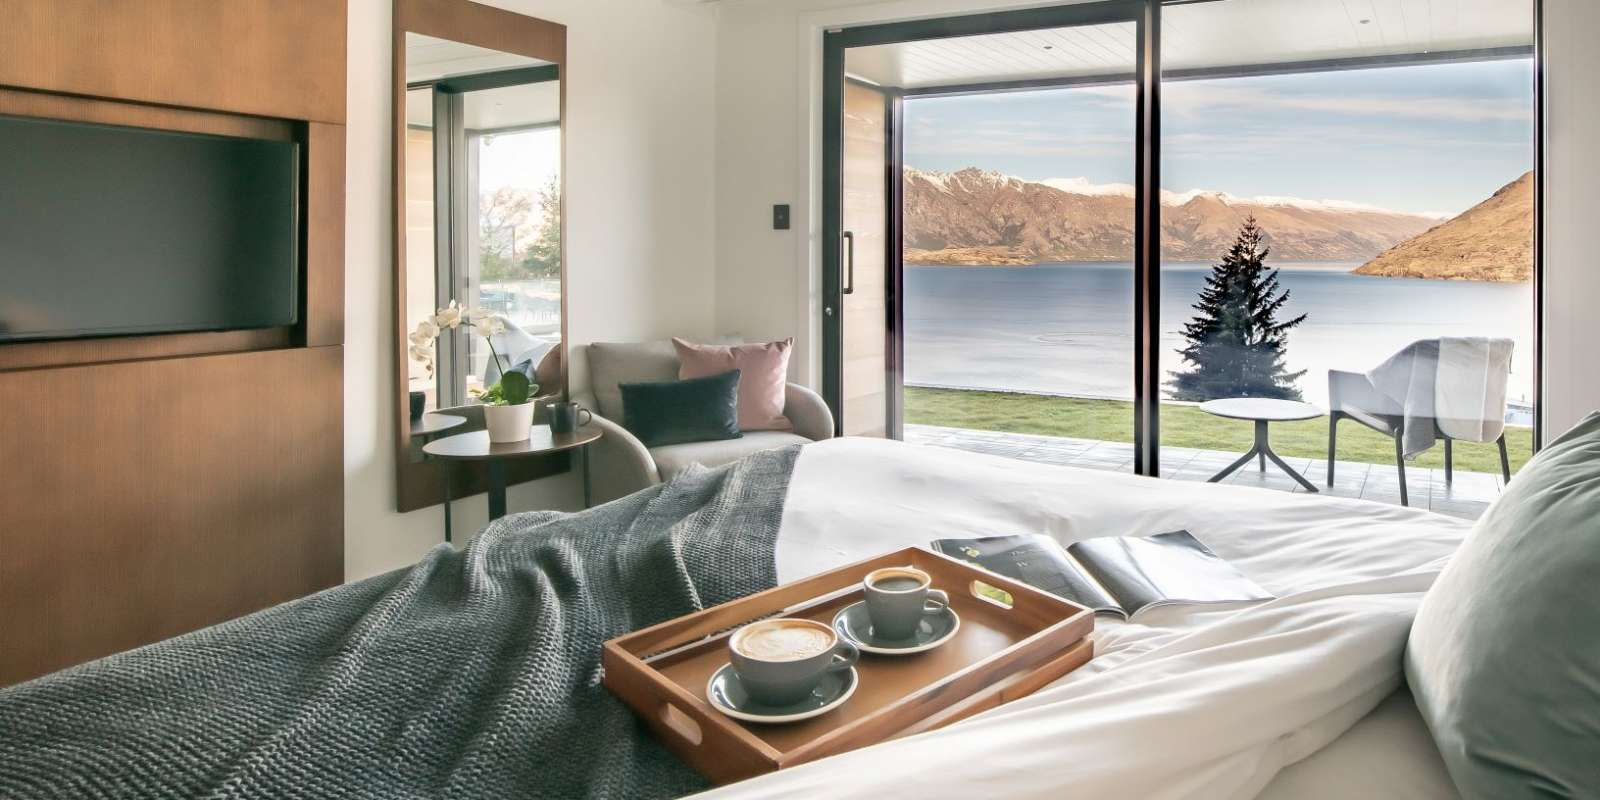 Double room at Kamana Lakehouse with lake and mountain views